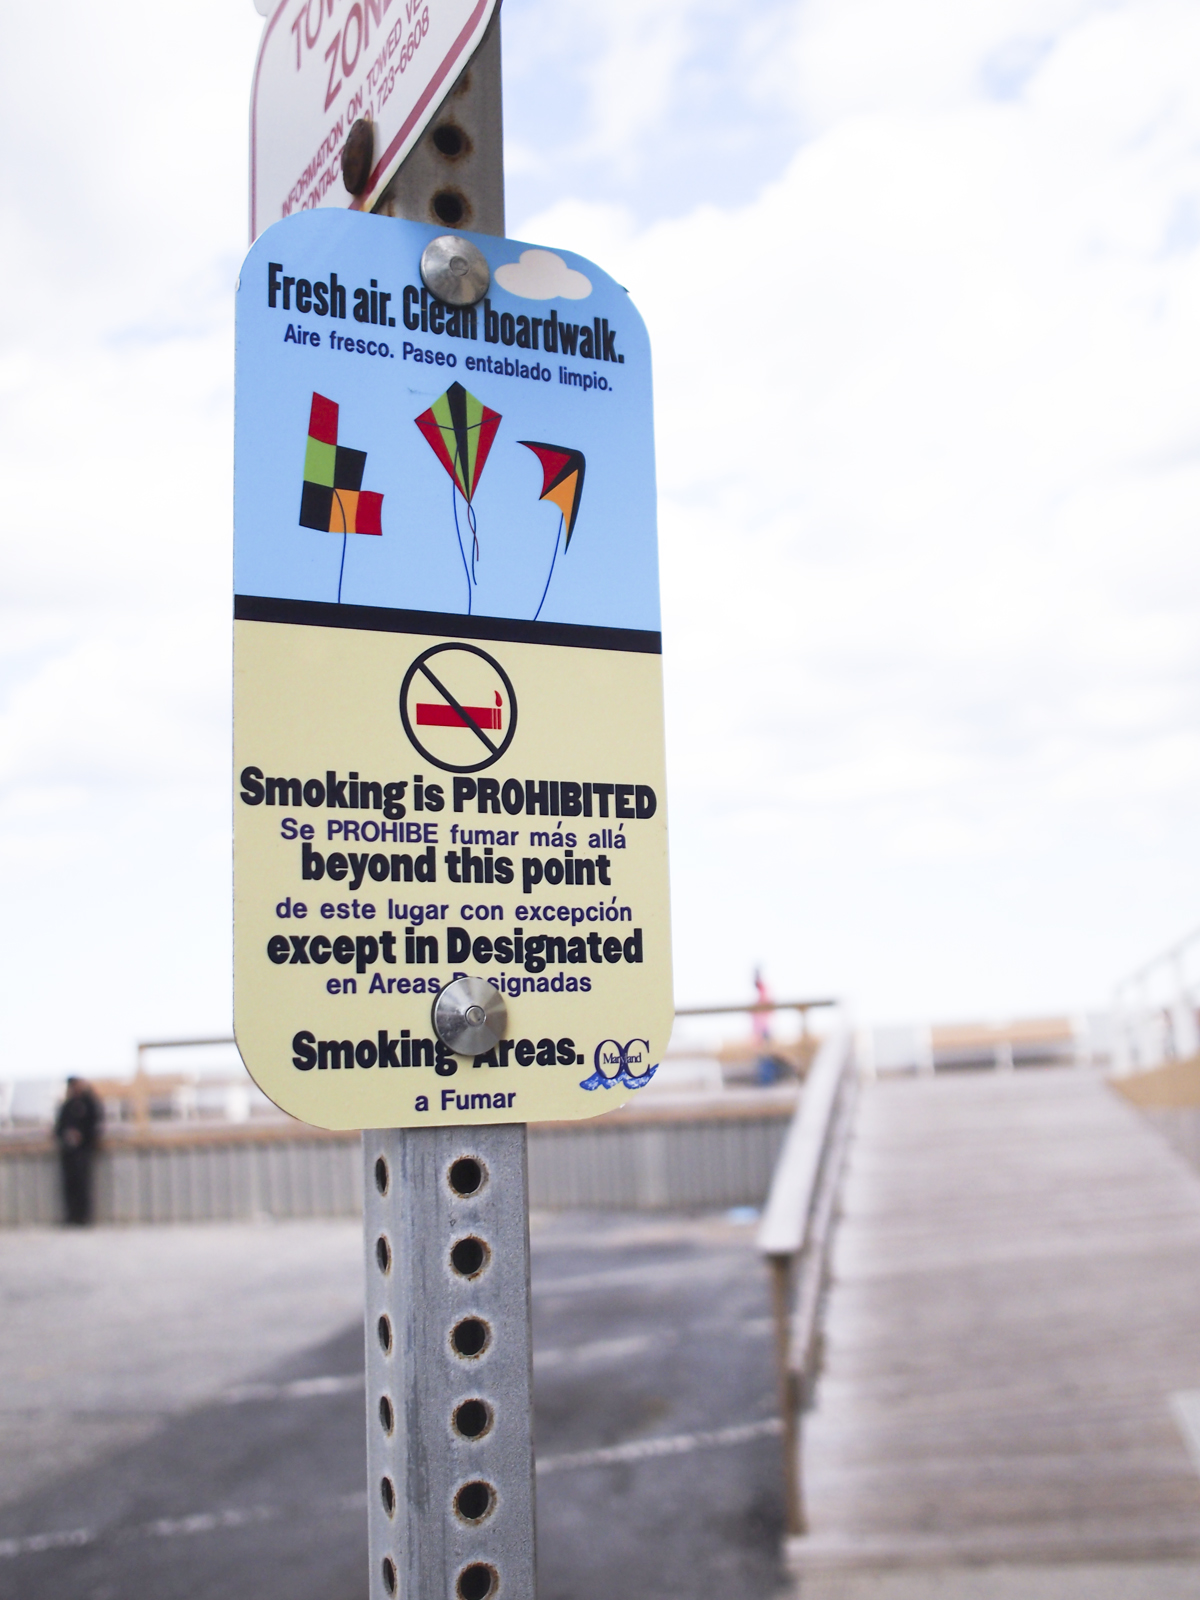 Boardwalk smoking stops today